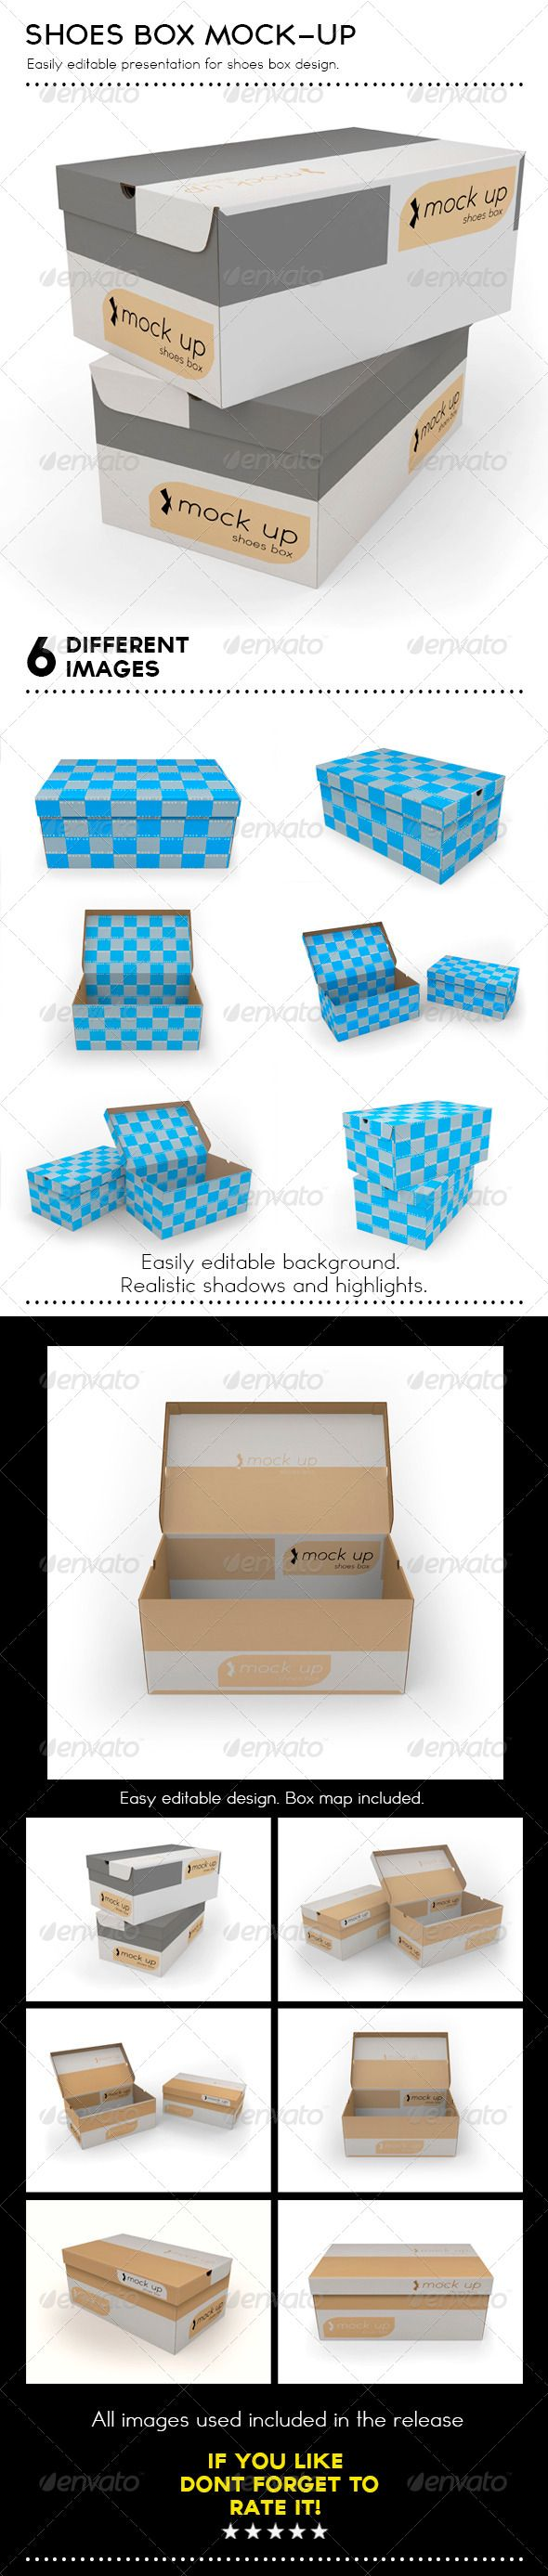 Shoes Box Mockup by Gustavlegion Mock up include: - 6 different images of shoes  box